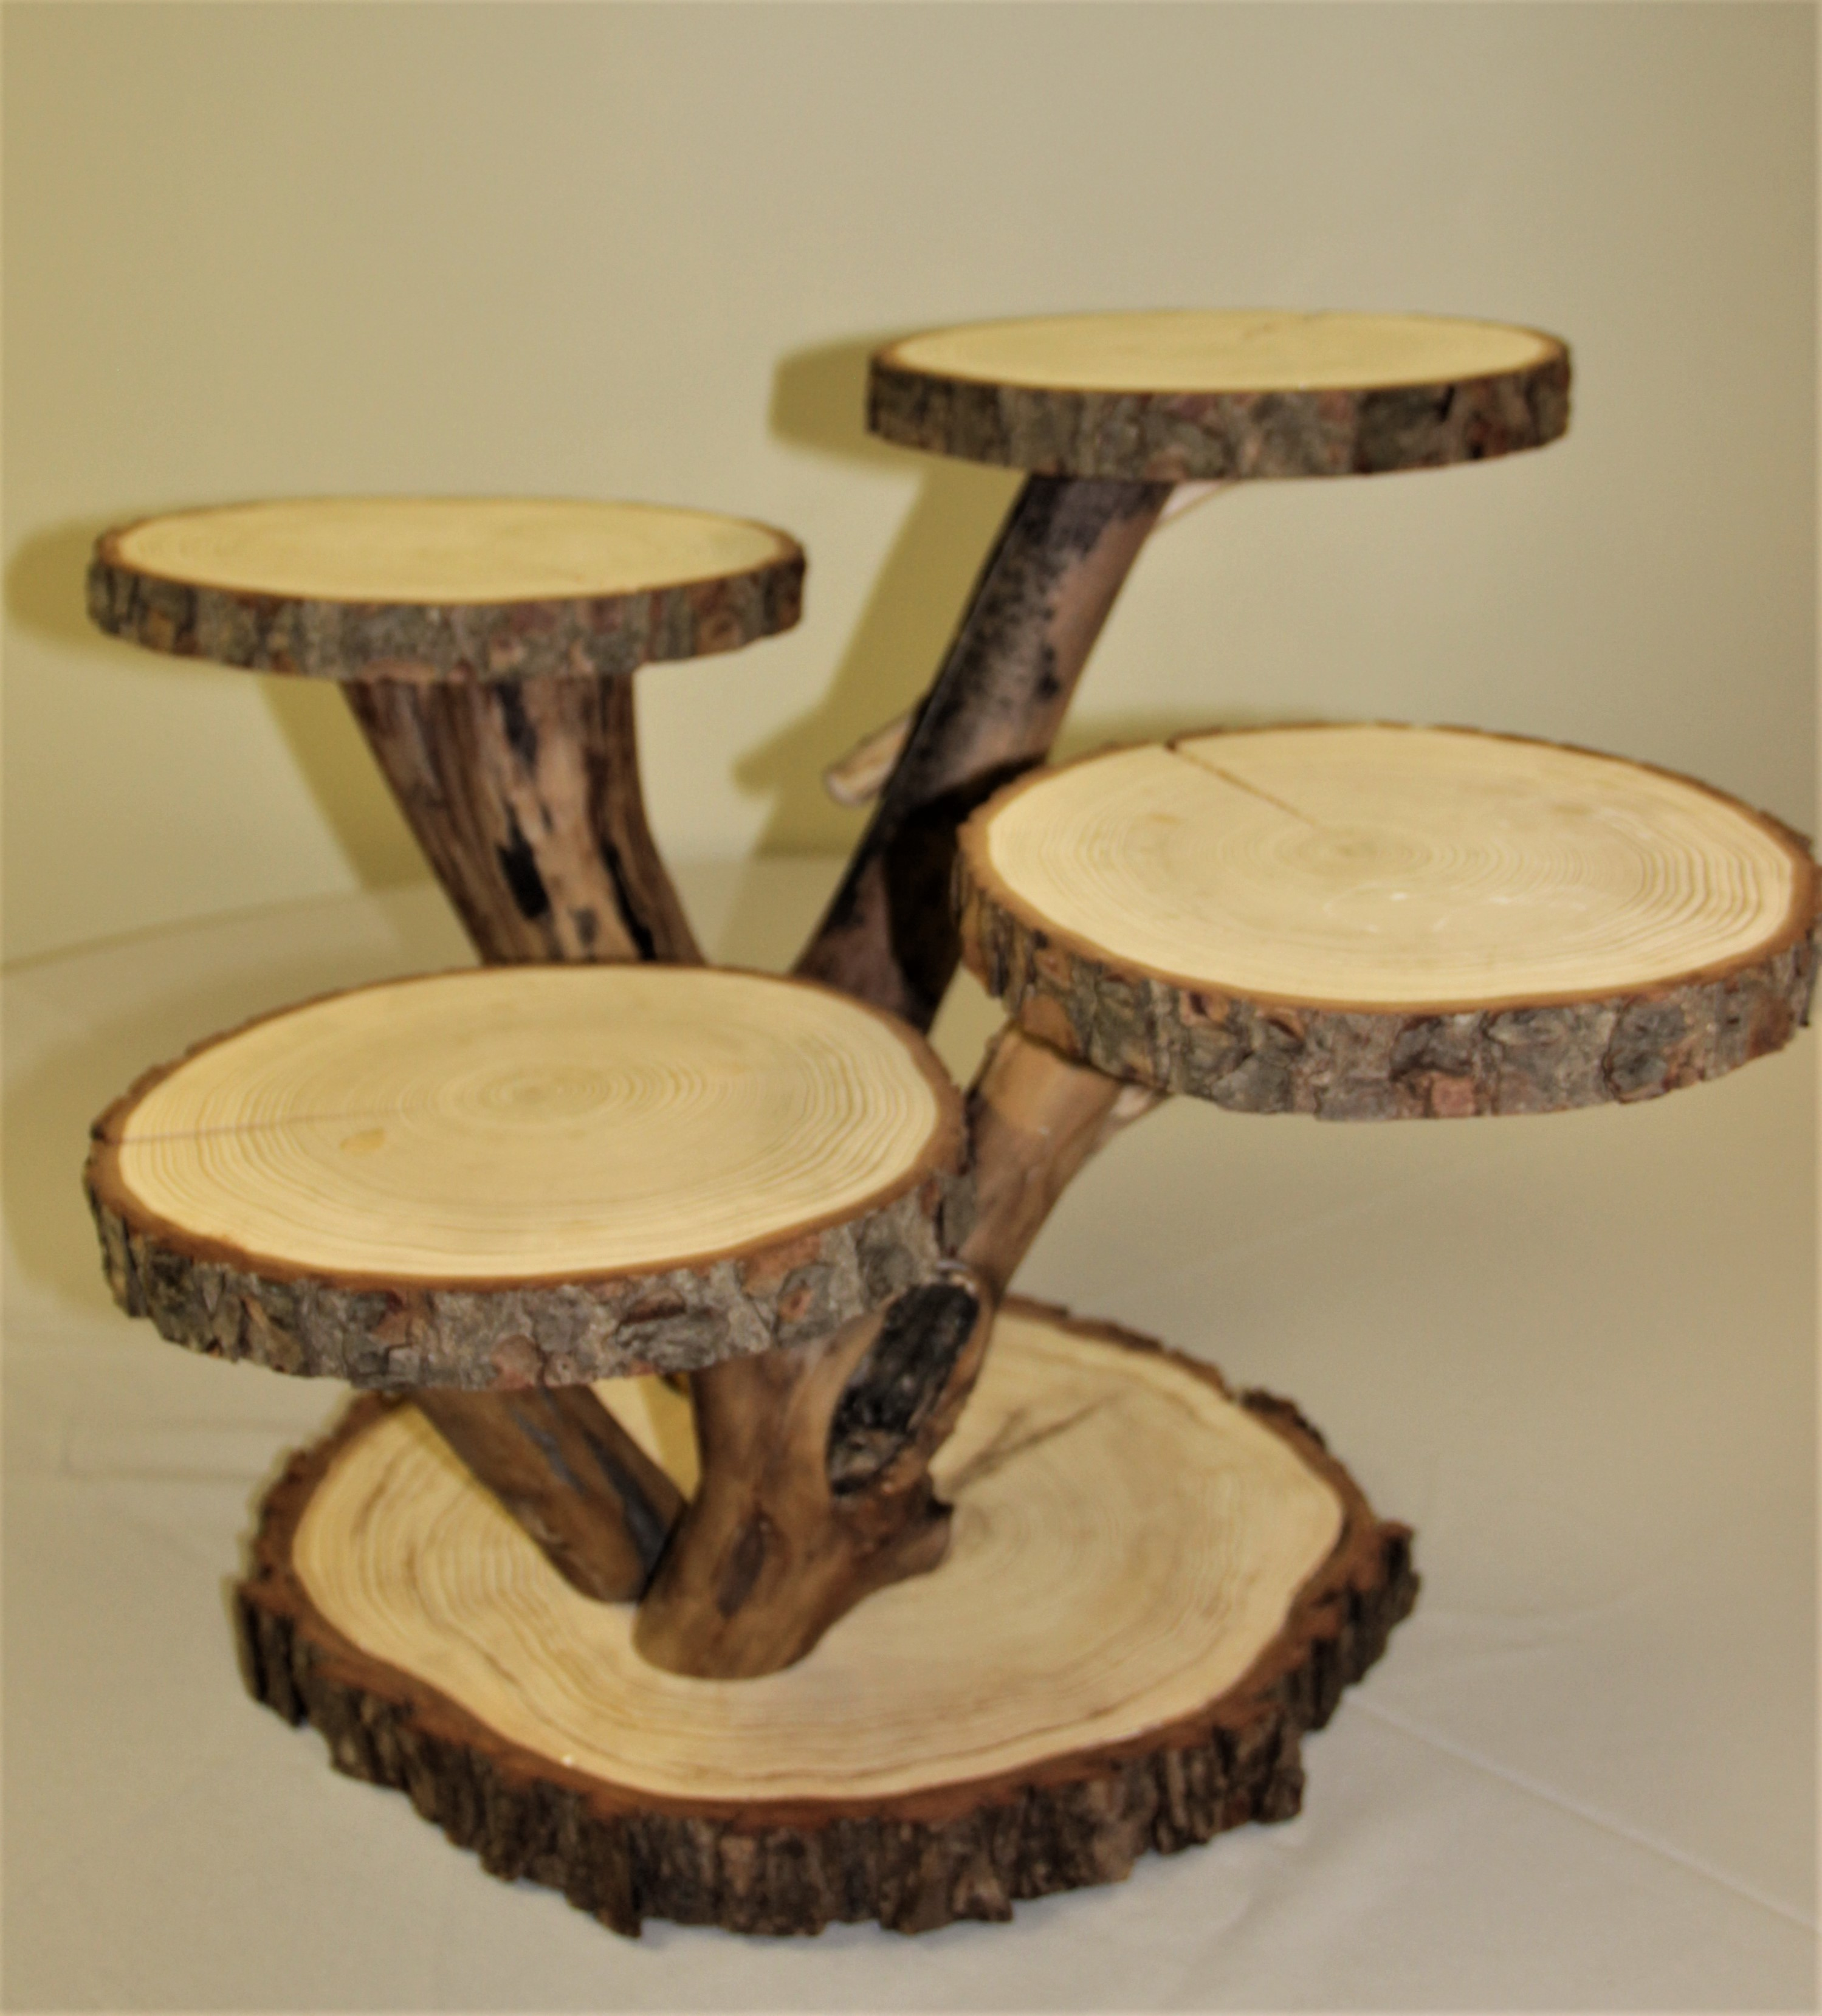 tree branch wedding cake stand multi level wood slice display 307 events 21252